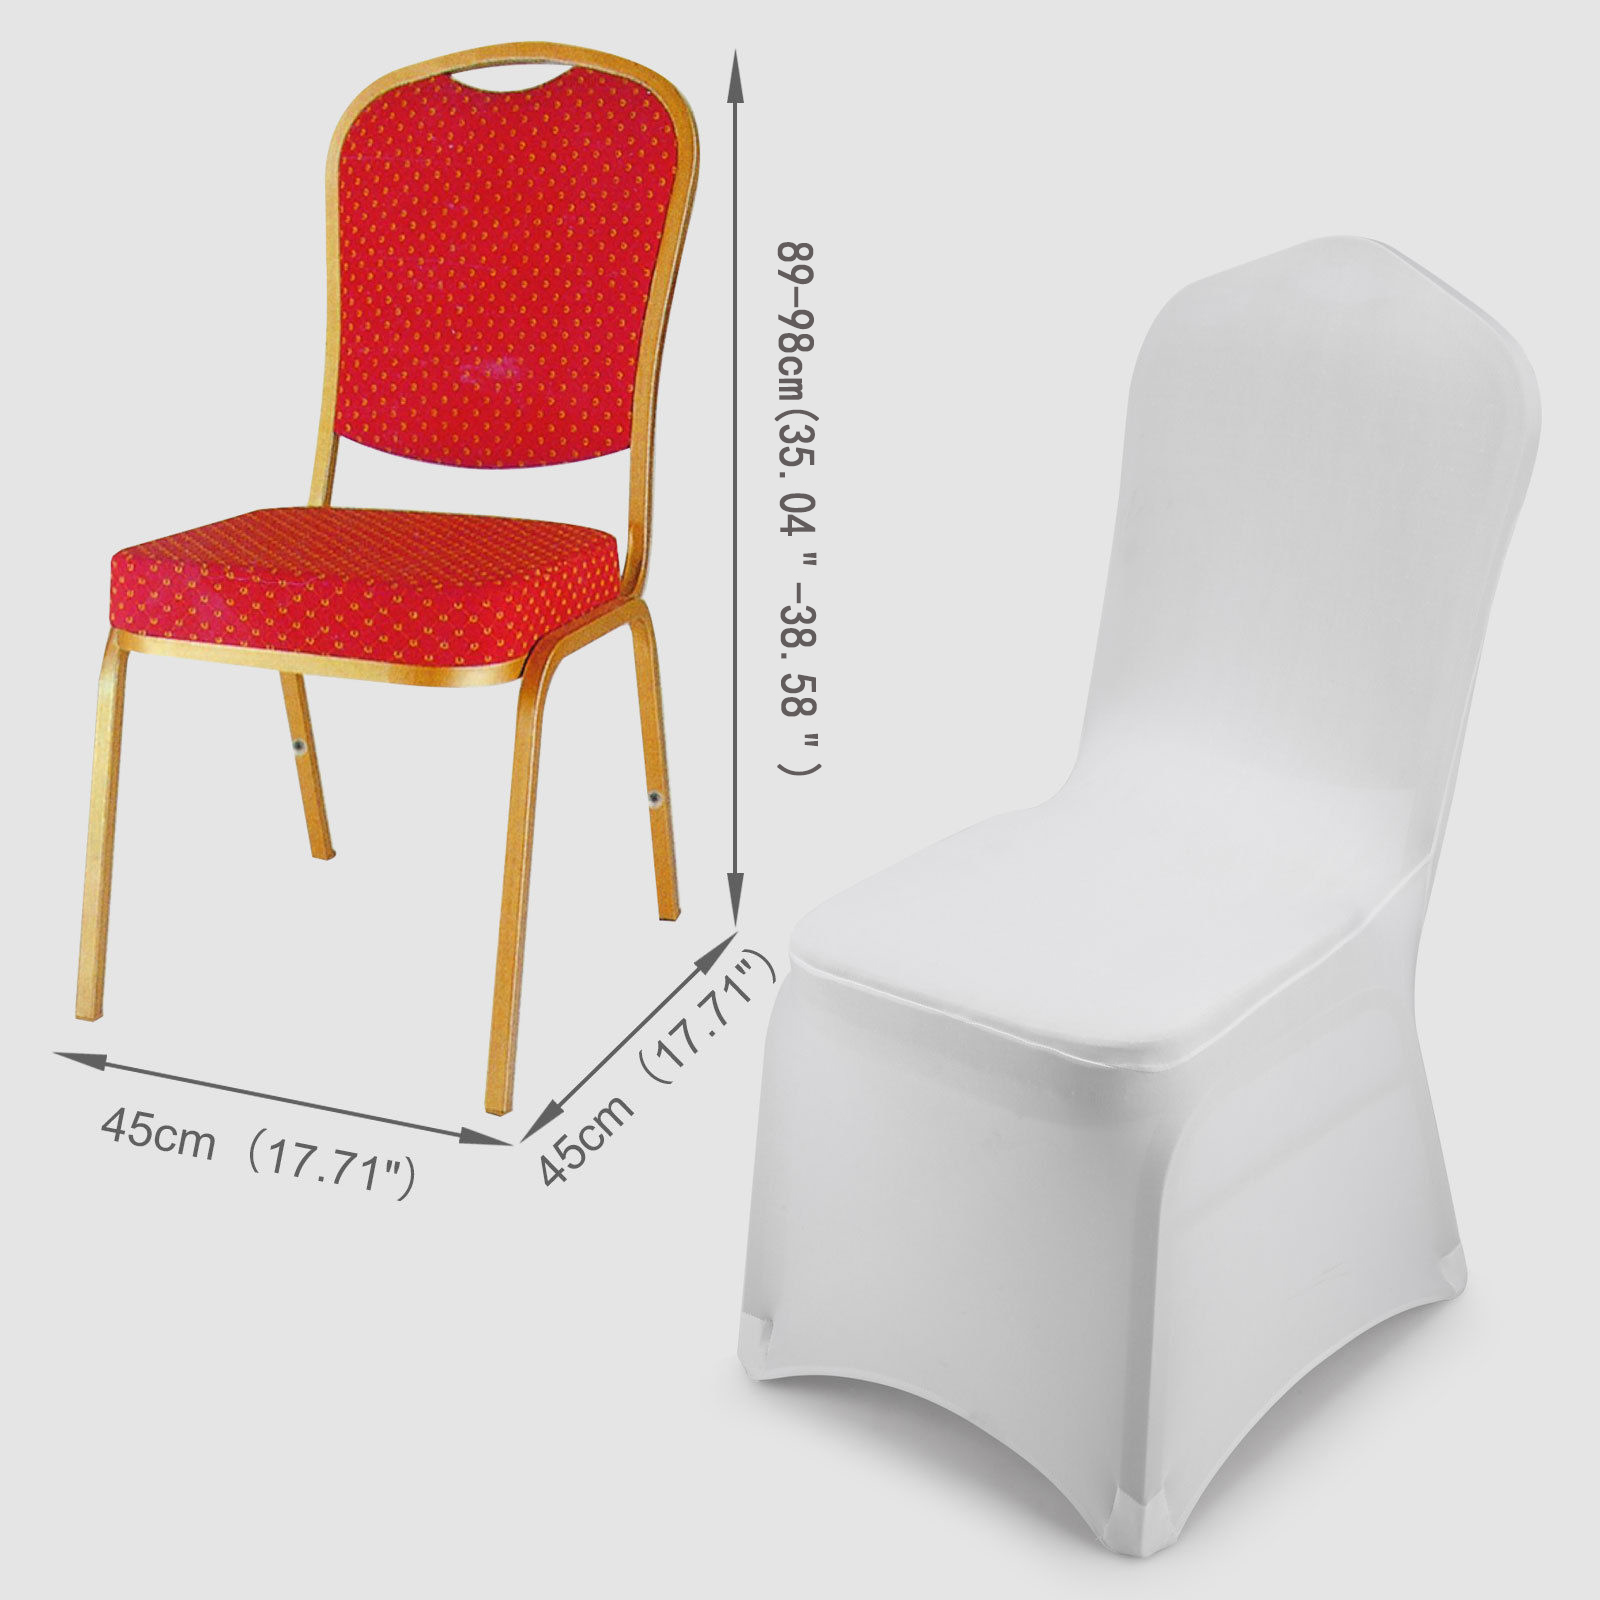 50 100 PCS Universal Spandex Fitted Folding Chair Covers Wedding